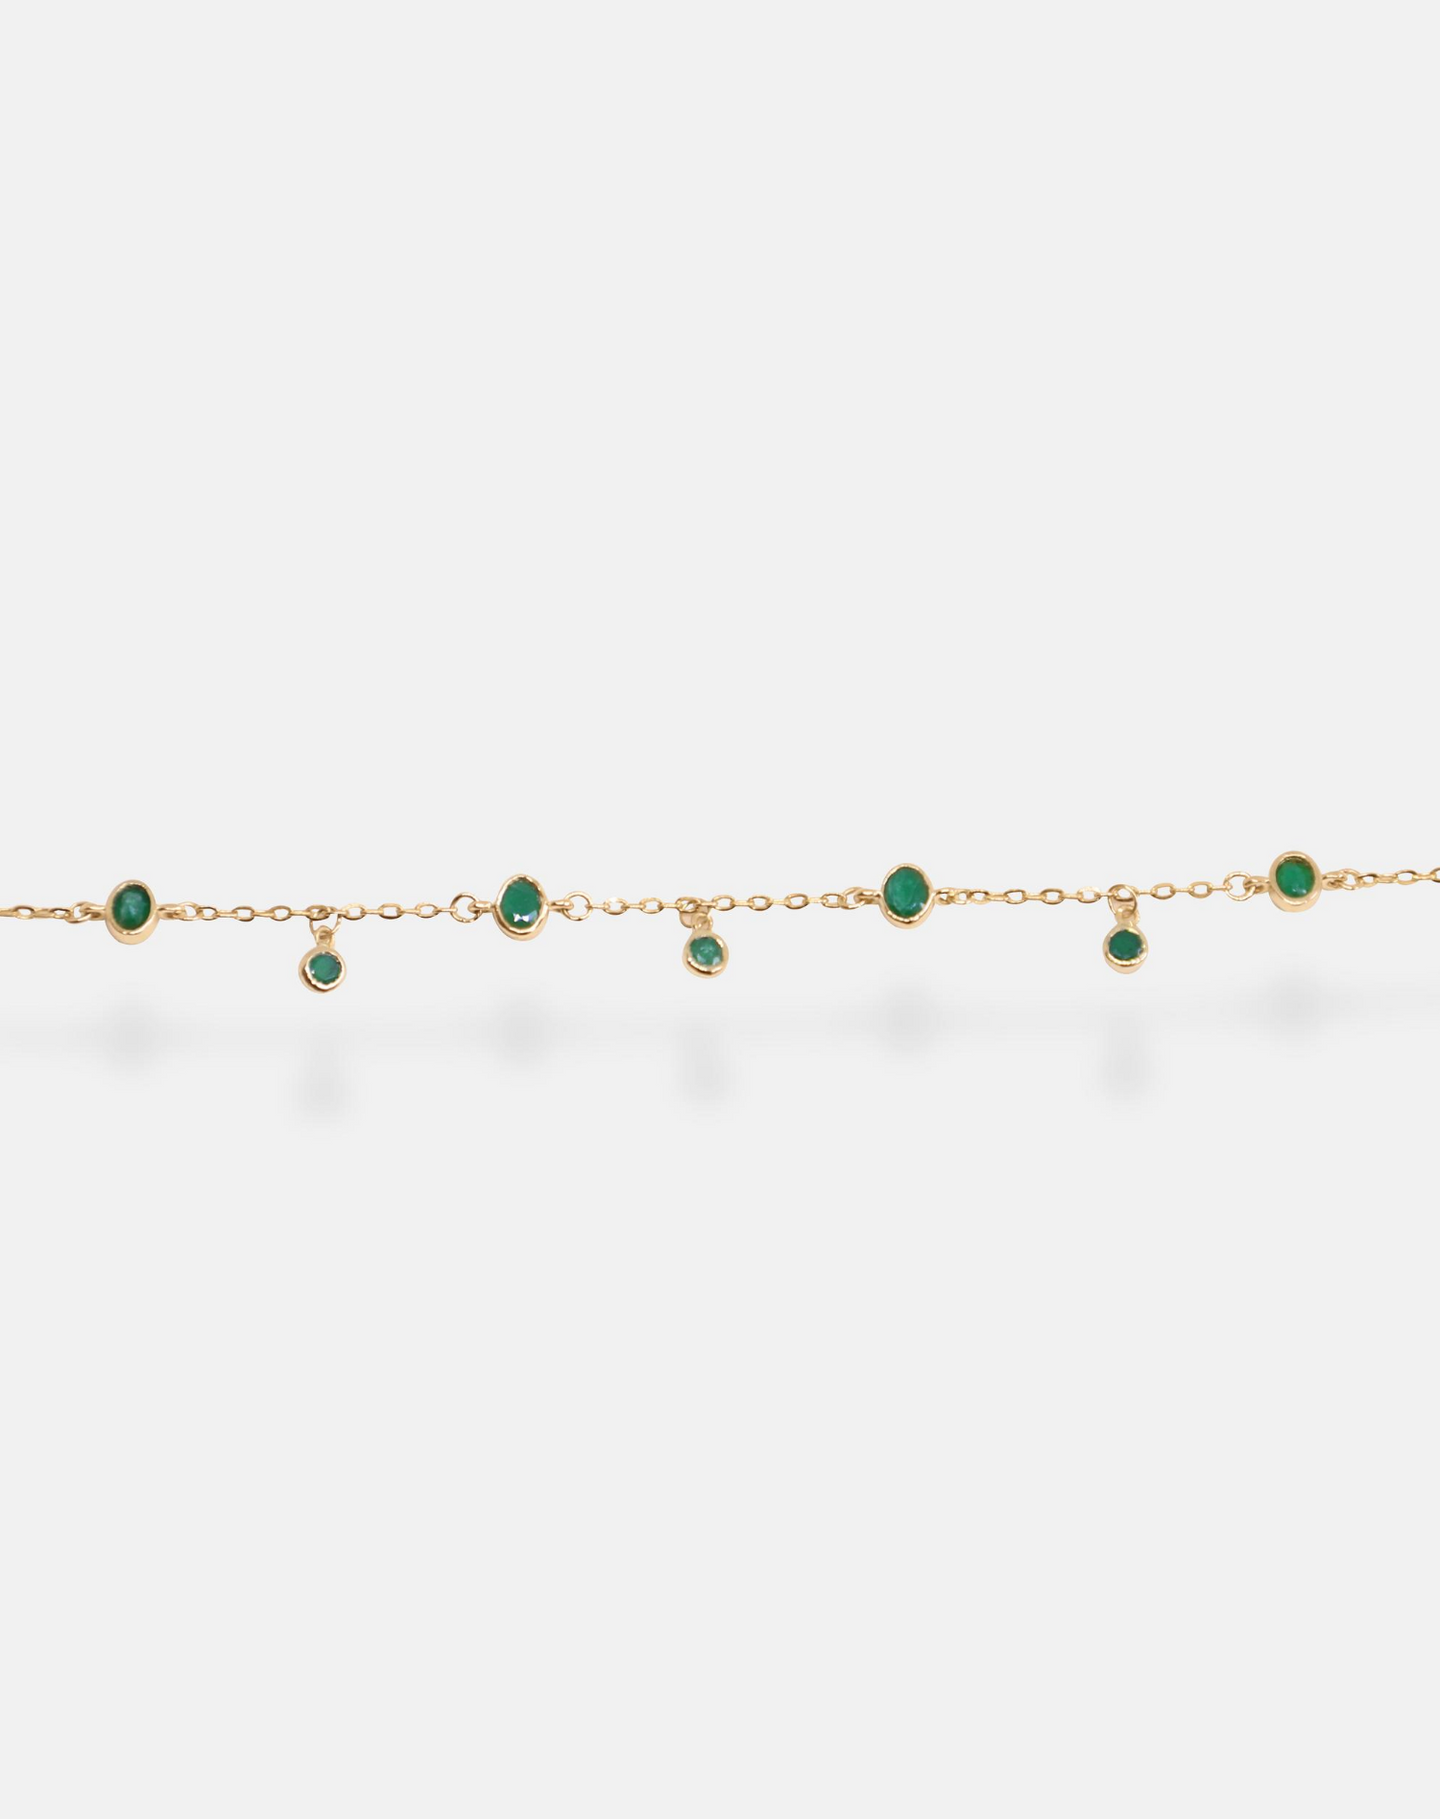 Emerald Oval and Round Bracelet